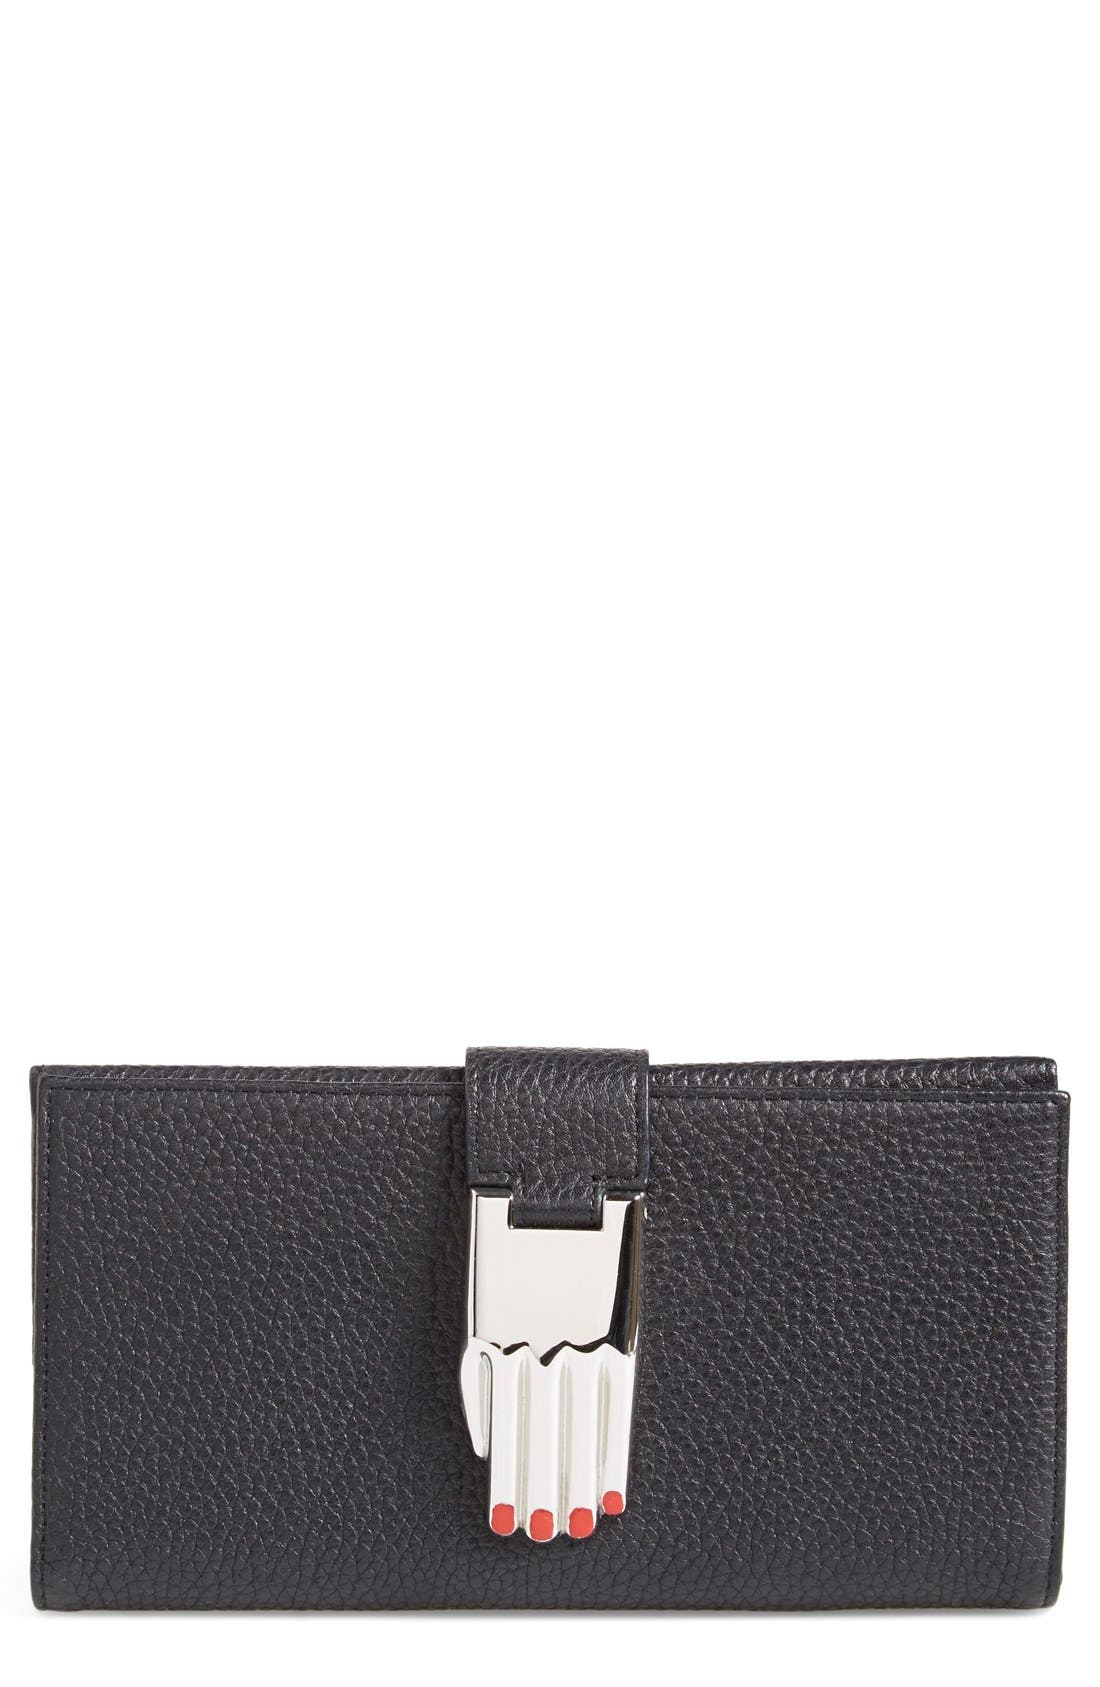 Alternate Image 1 Selected - Opening Ceremony 'Misha' Leather Wallet